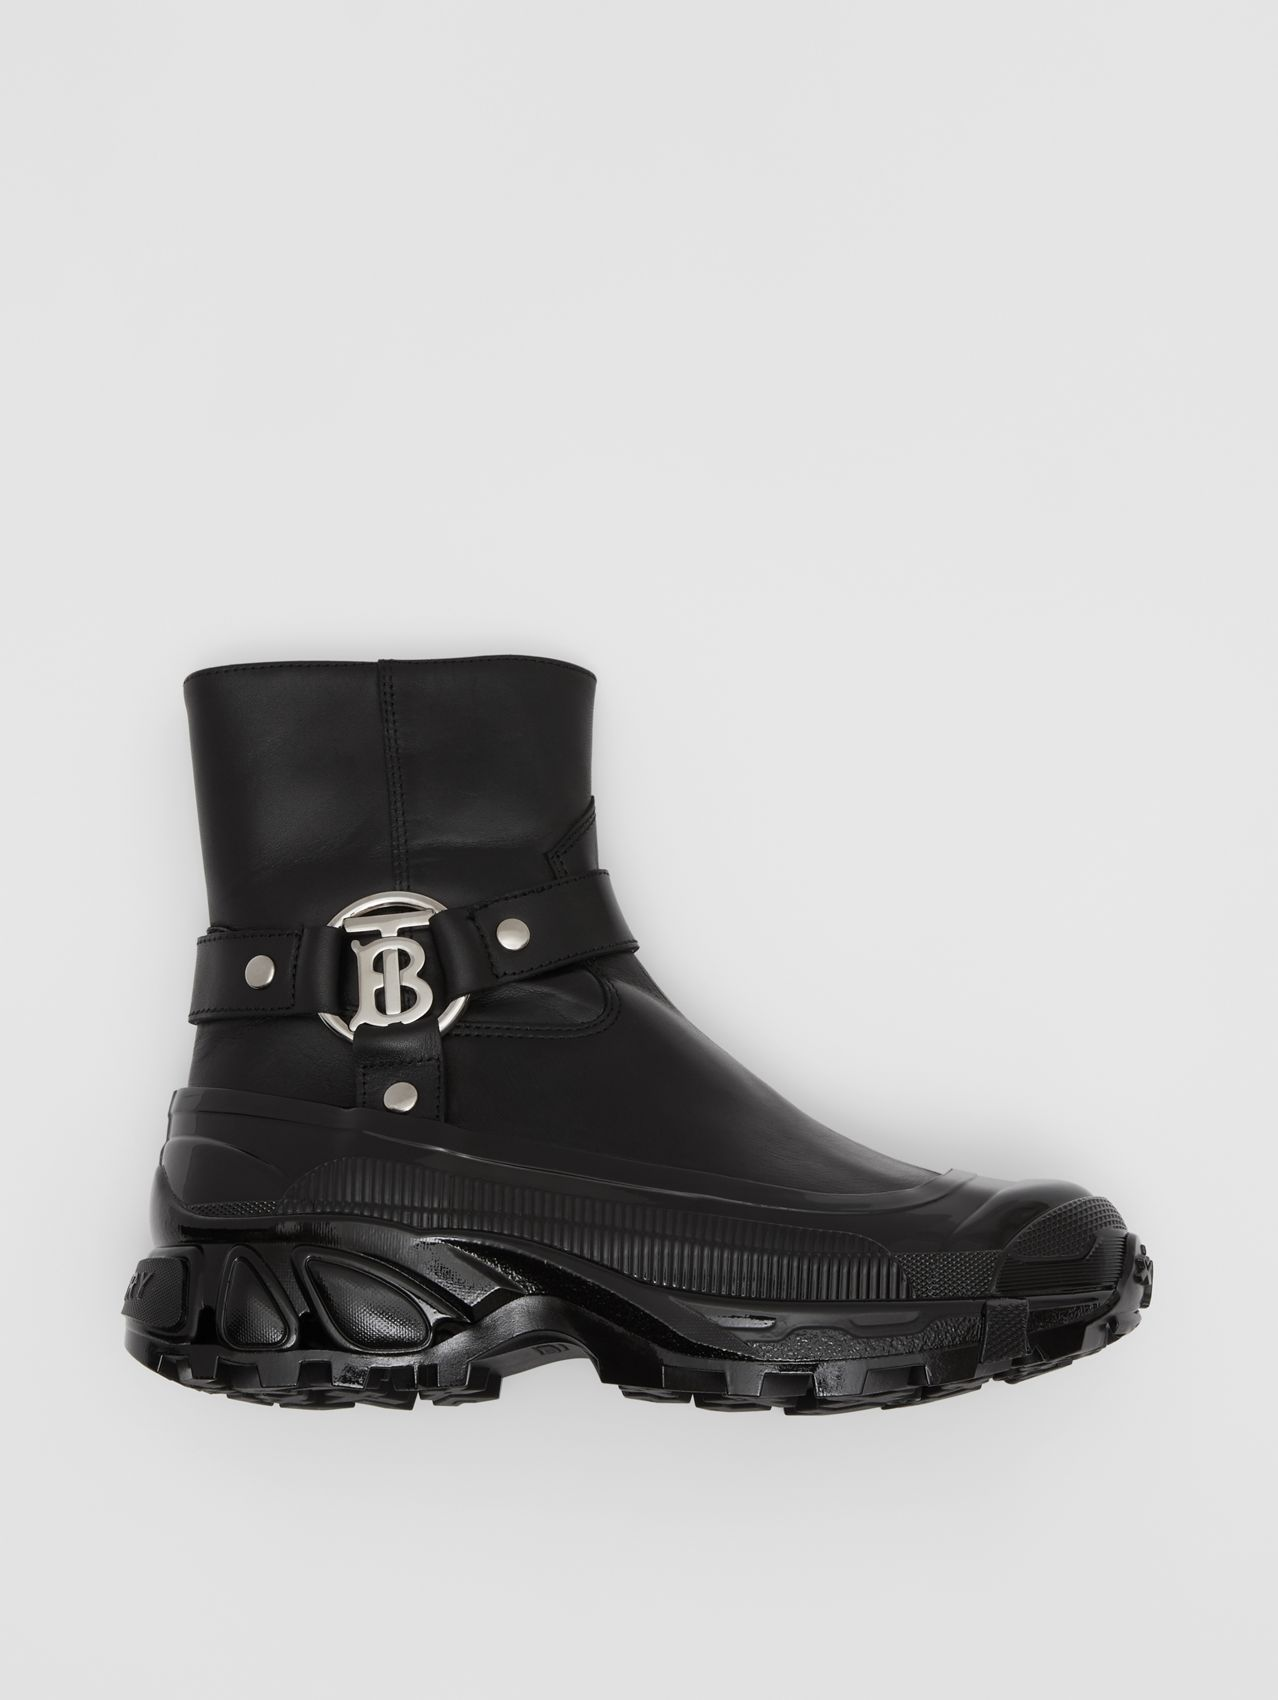 Monogram Motif Buckle Leather Boots (Black)